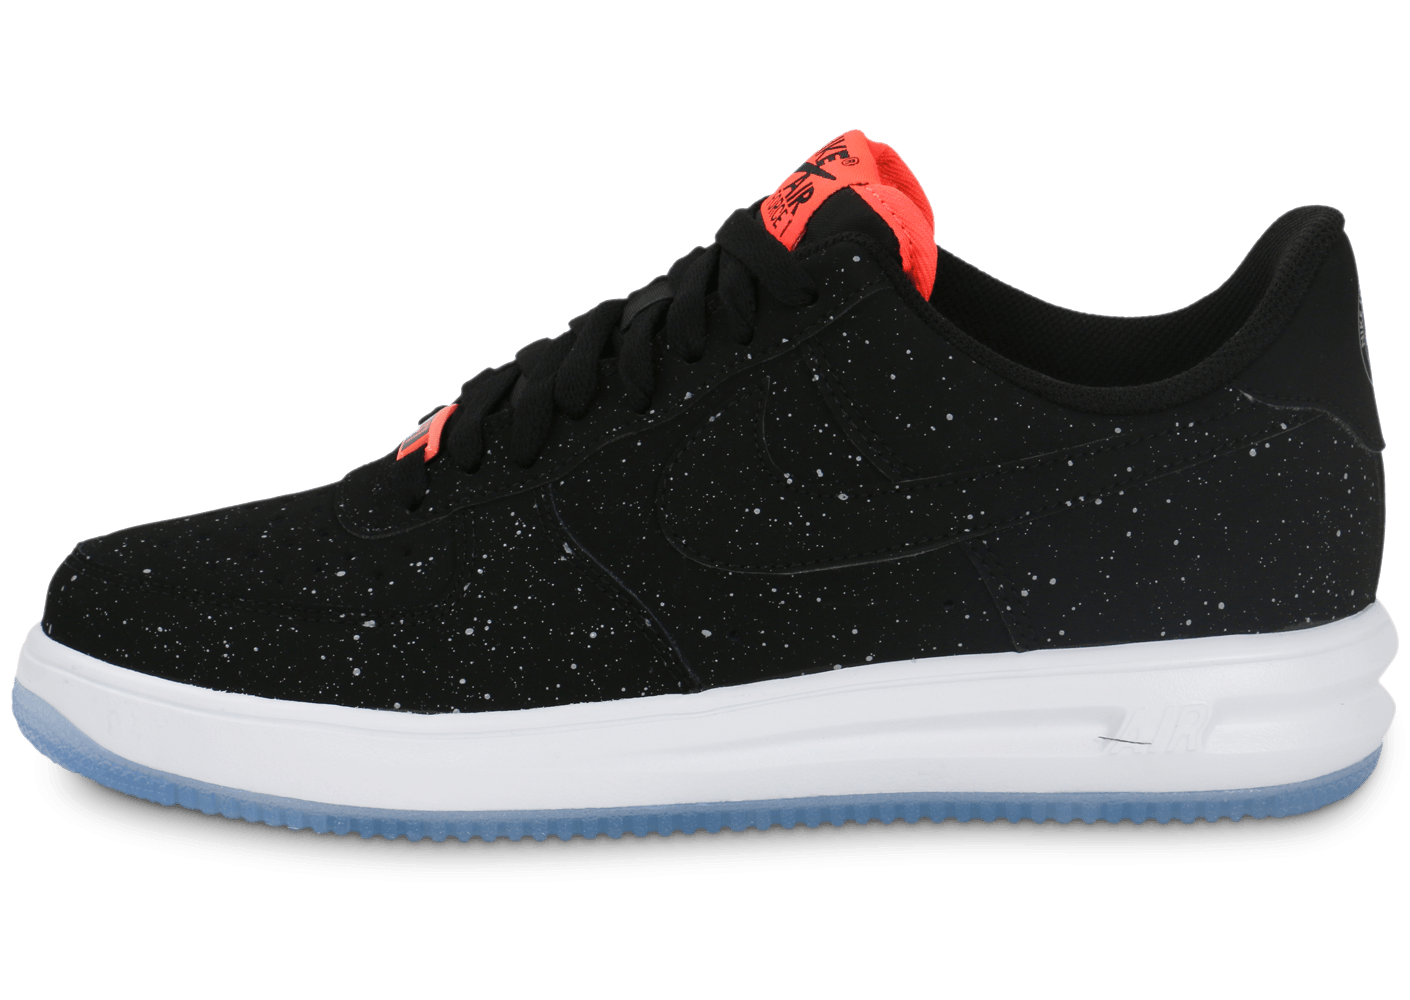 nike lunar air force 1,nike lunar force 1 black speckle